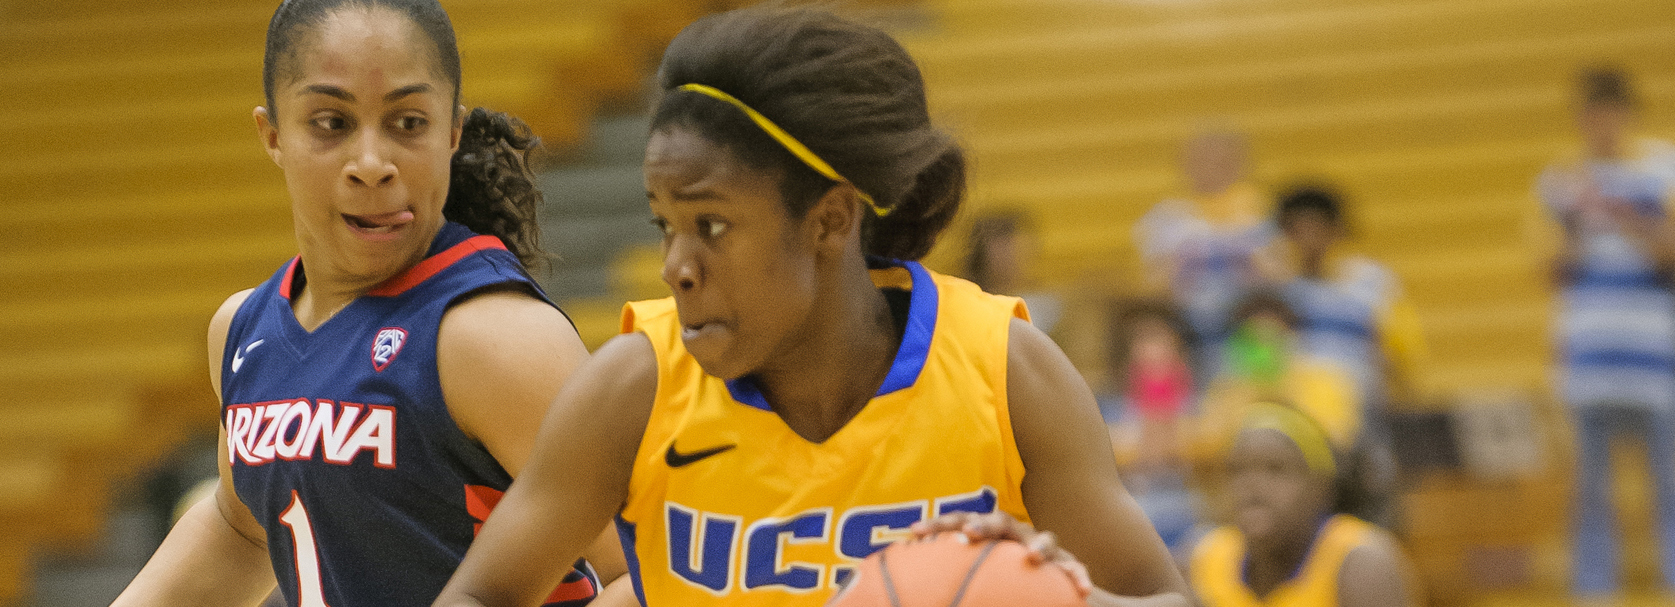 UCSB Visits Pepperdine, Hosts Northern Arizona This Week